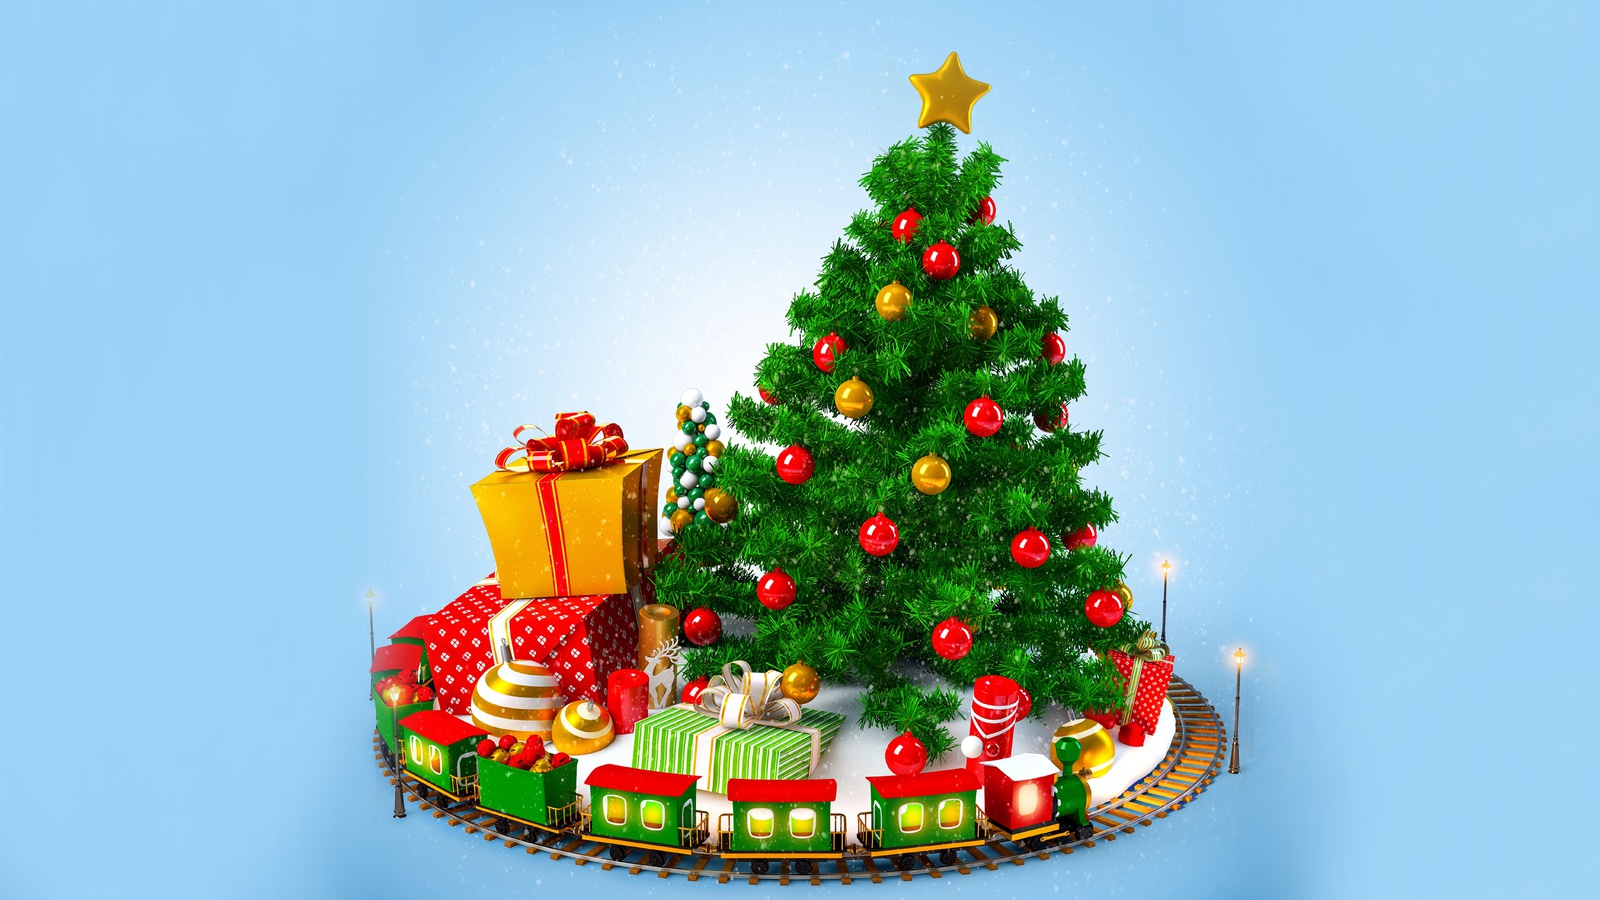 decoration, dolls, New year, gifts, toys, ornaments, balls, christmas tree, merry christmas